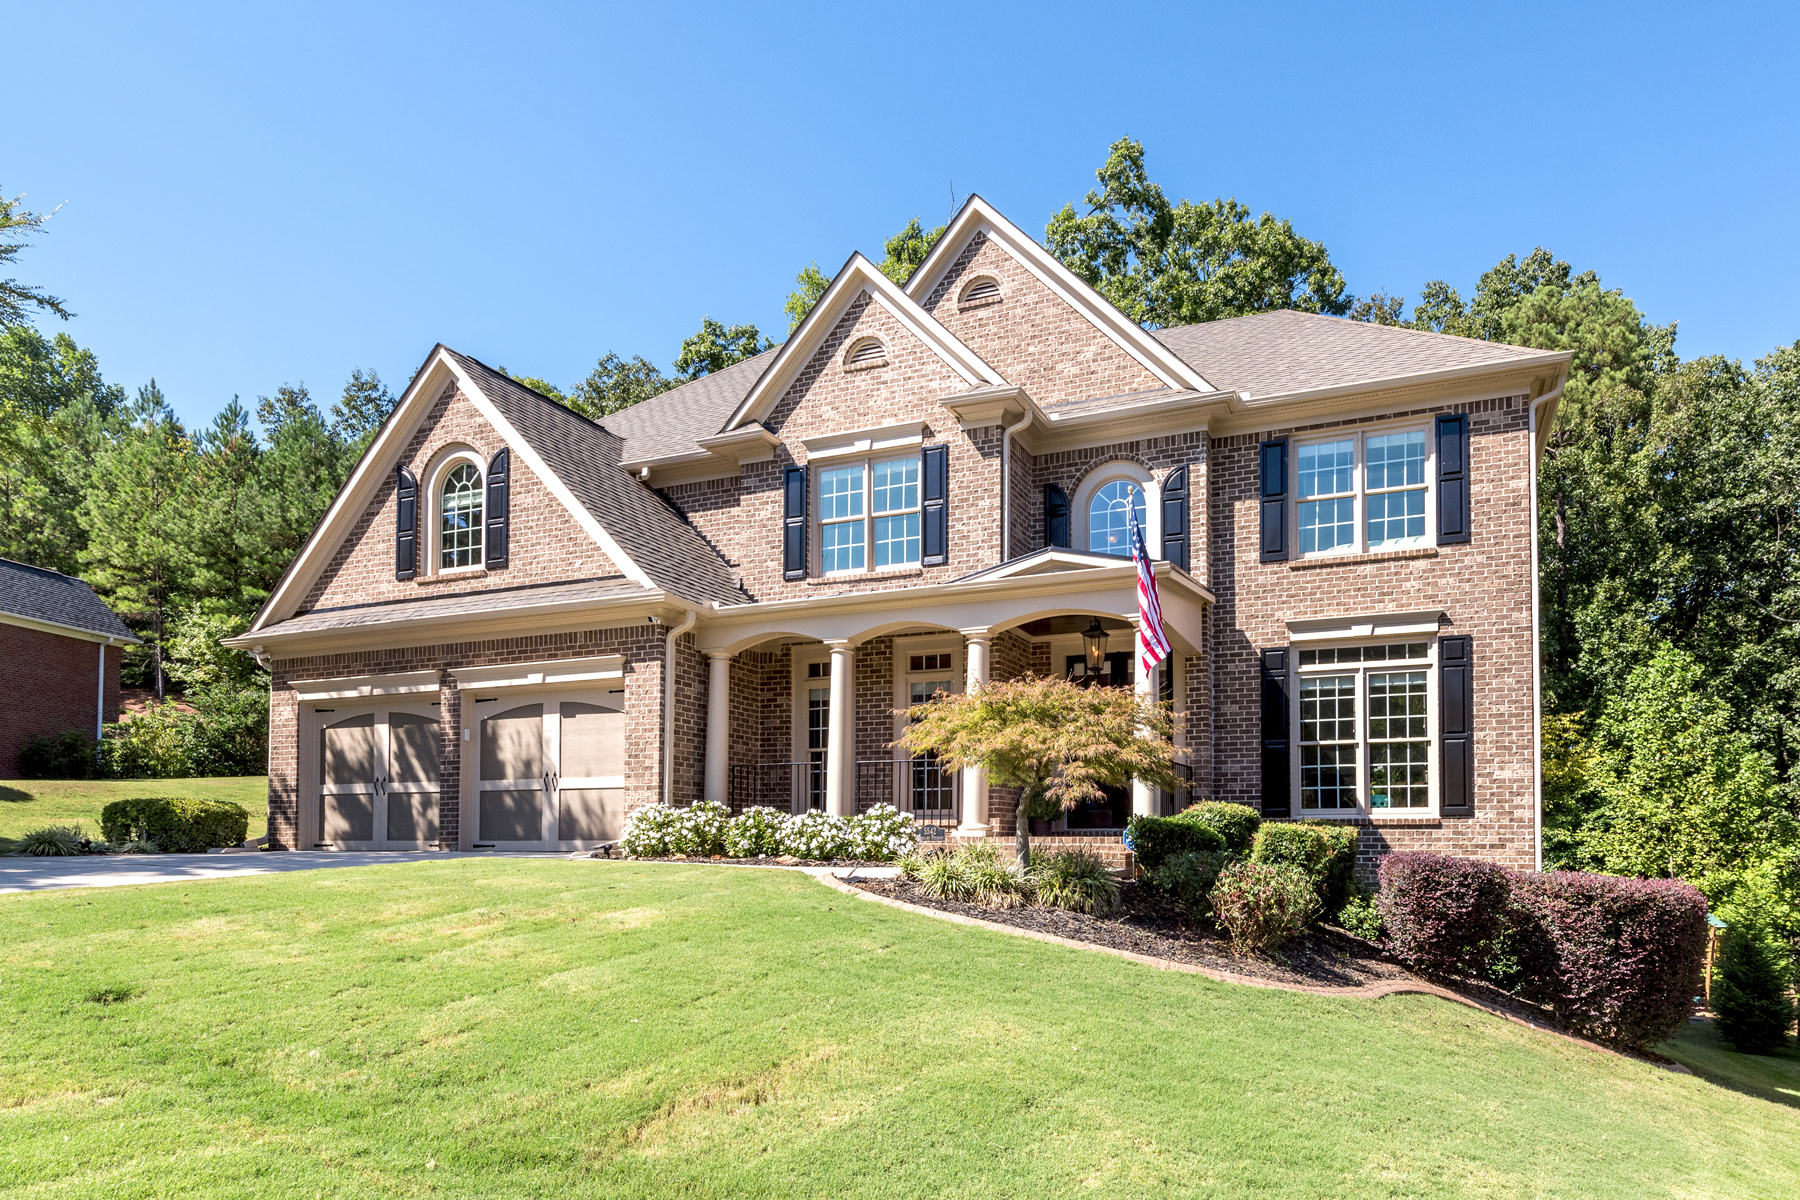 Single Family Home for Sale at Inviting Cul-de-sac Home 5542 Highland Preserve Drive Mableton, Georgia, 30126 United States